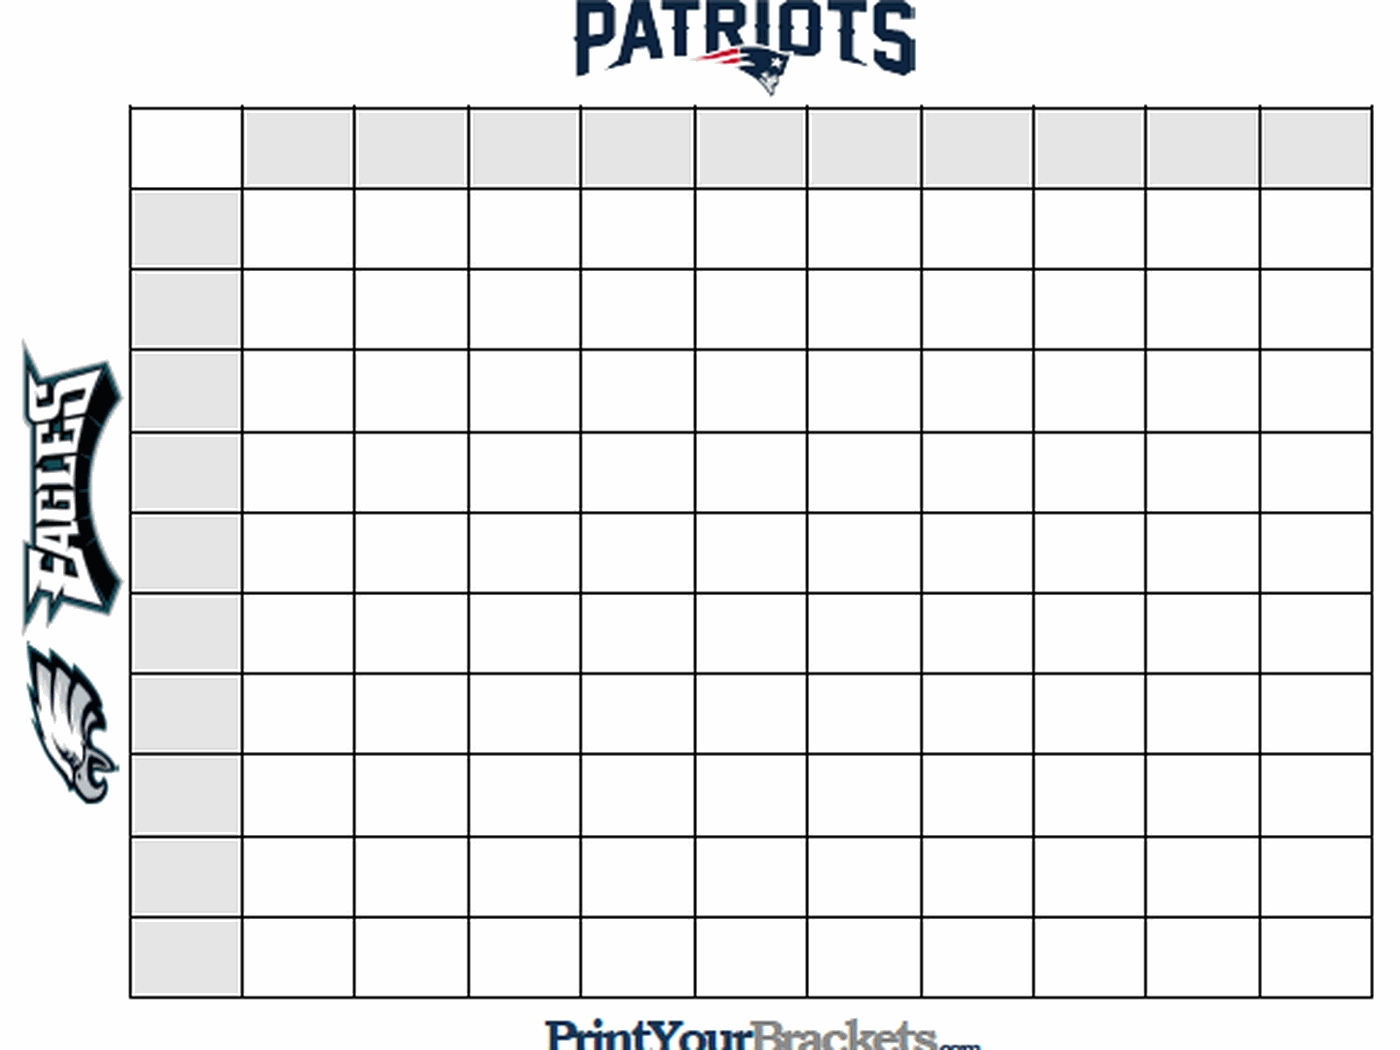 Super Bowl Squares Template, How To Play Online, And More for Super Bowl Box Layout